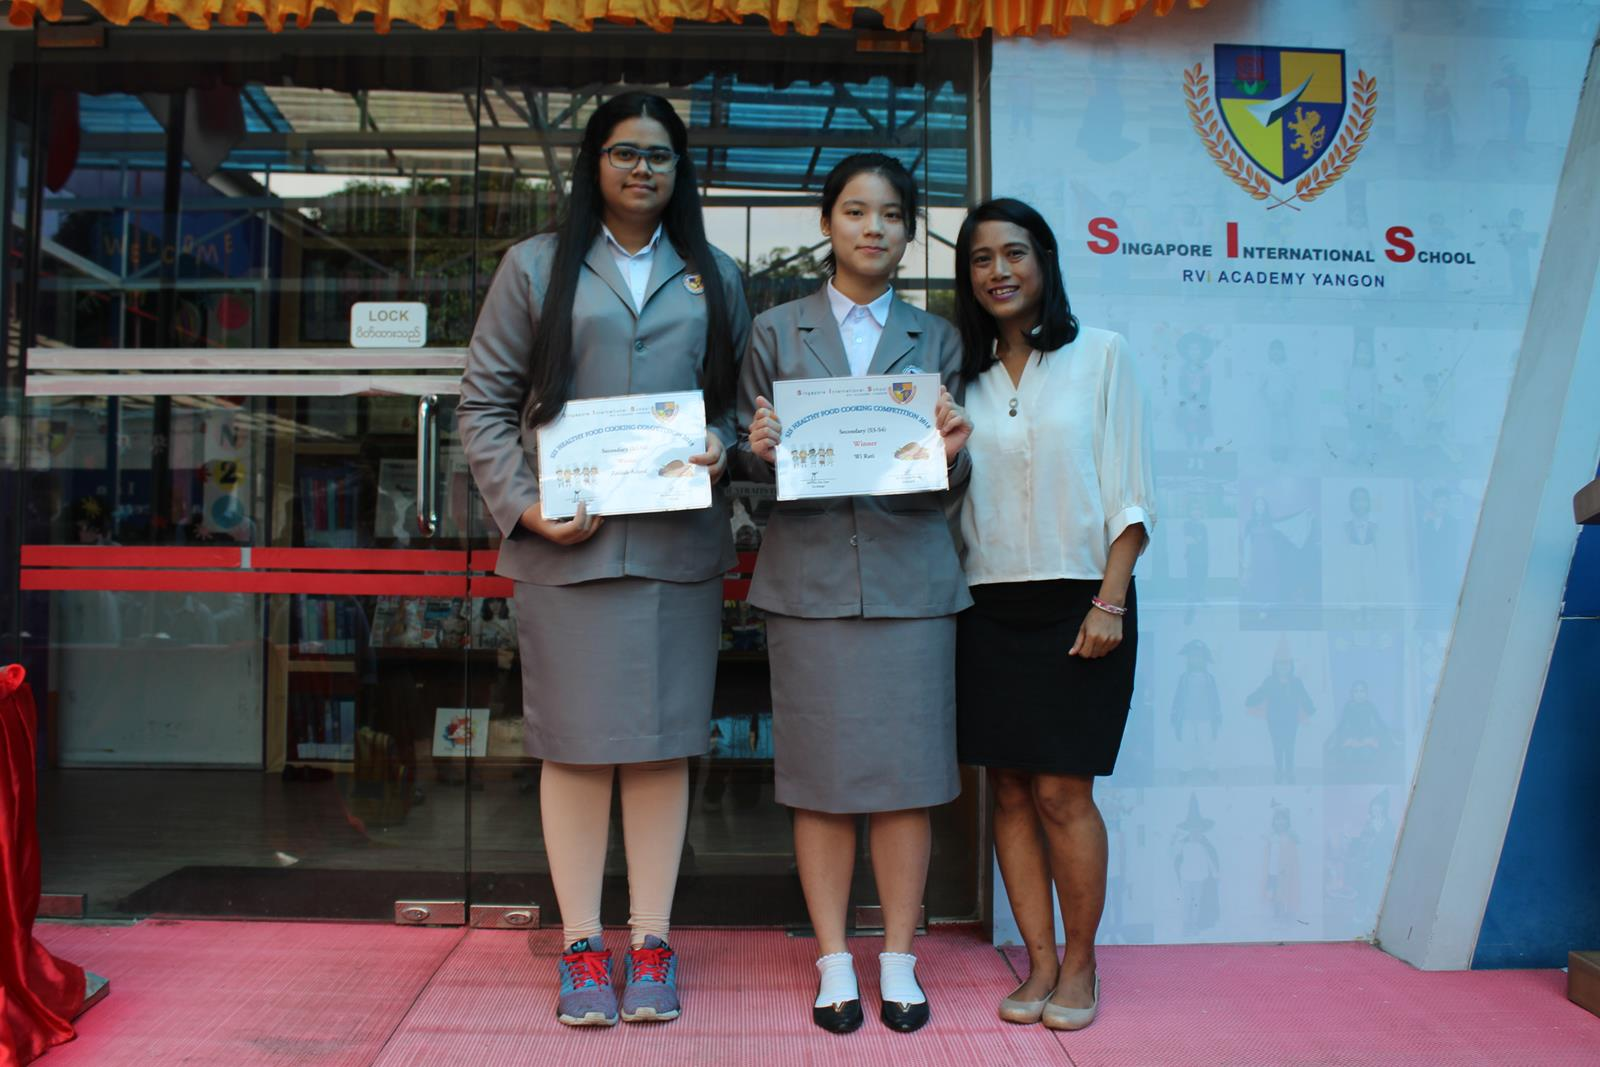 Presentation of Awards for Health Education Week Activities (17 Oct)